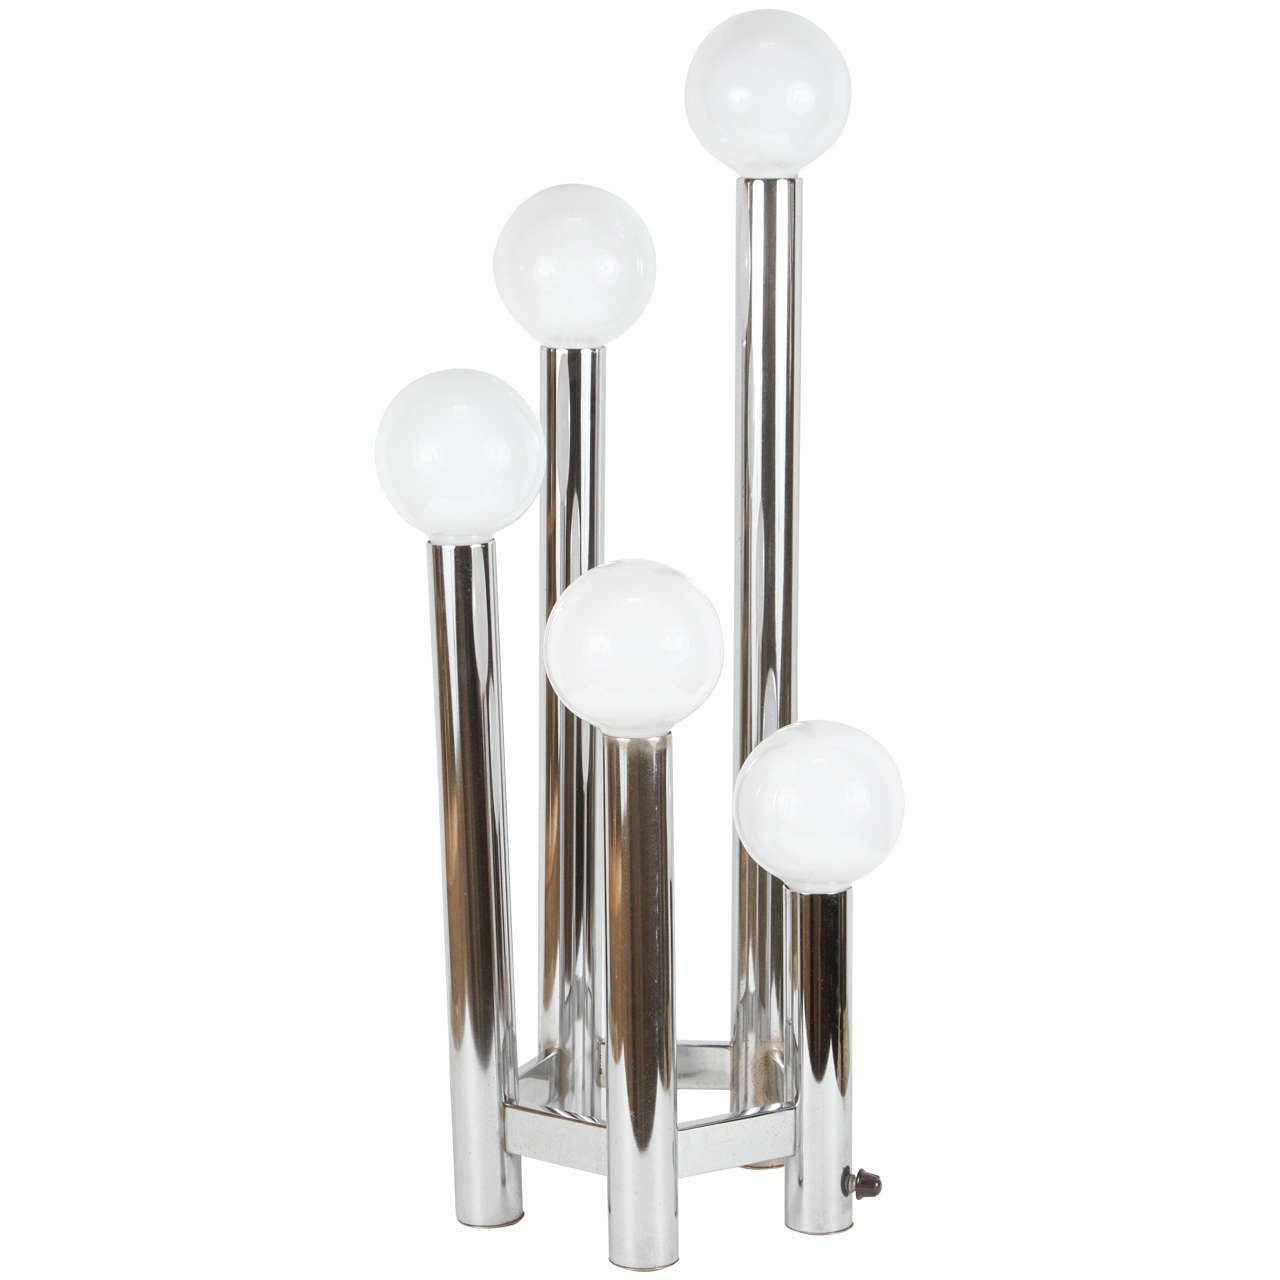 Hexagonal Chrome Tower Table Lamp